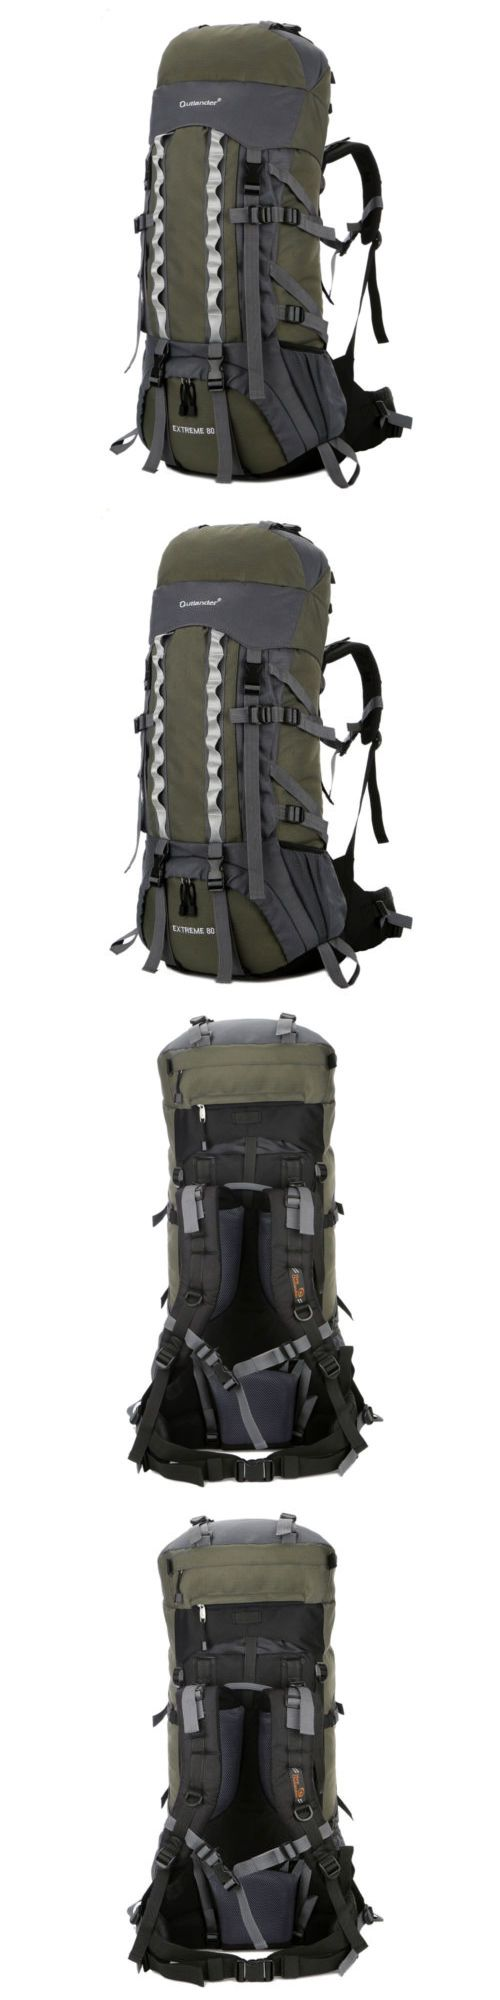 Backpacks 181379: 80L Outdoor Camping Hiking Backpack Travel Large Luggage Internal Frame Bag Pack -> BUY IT NOW ONLY: $31.89 on eBay!